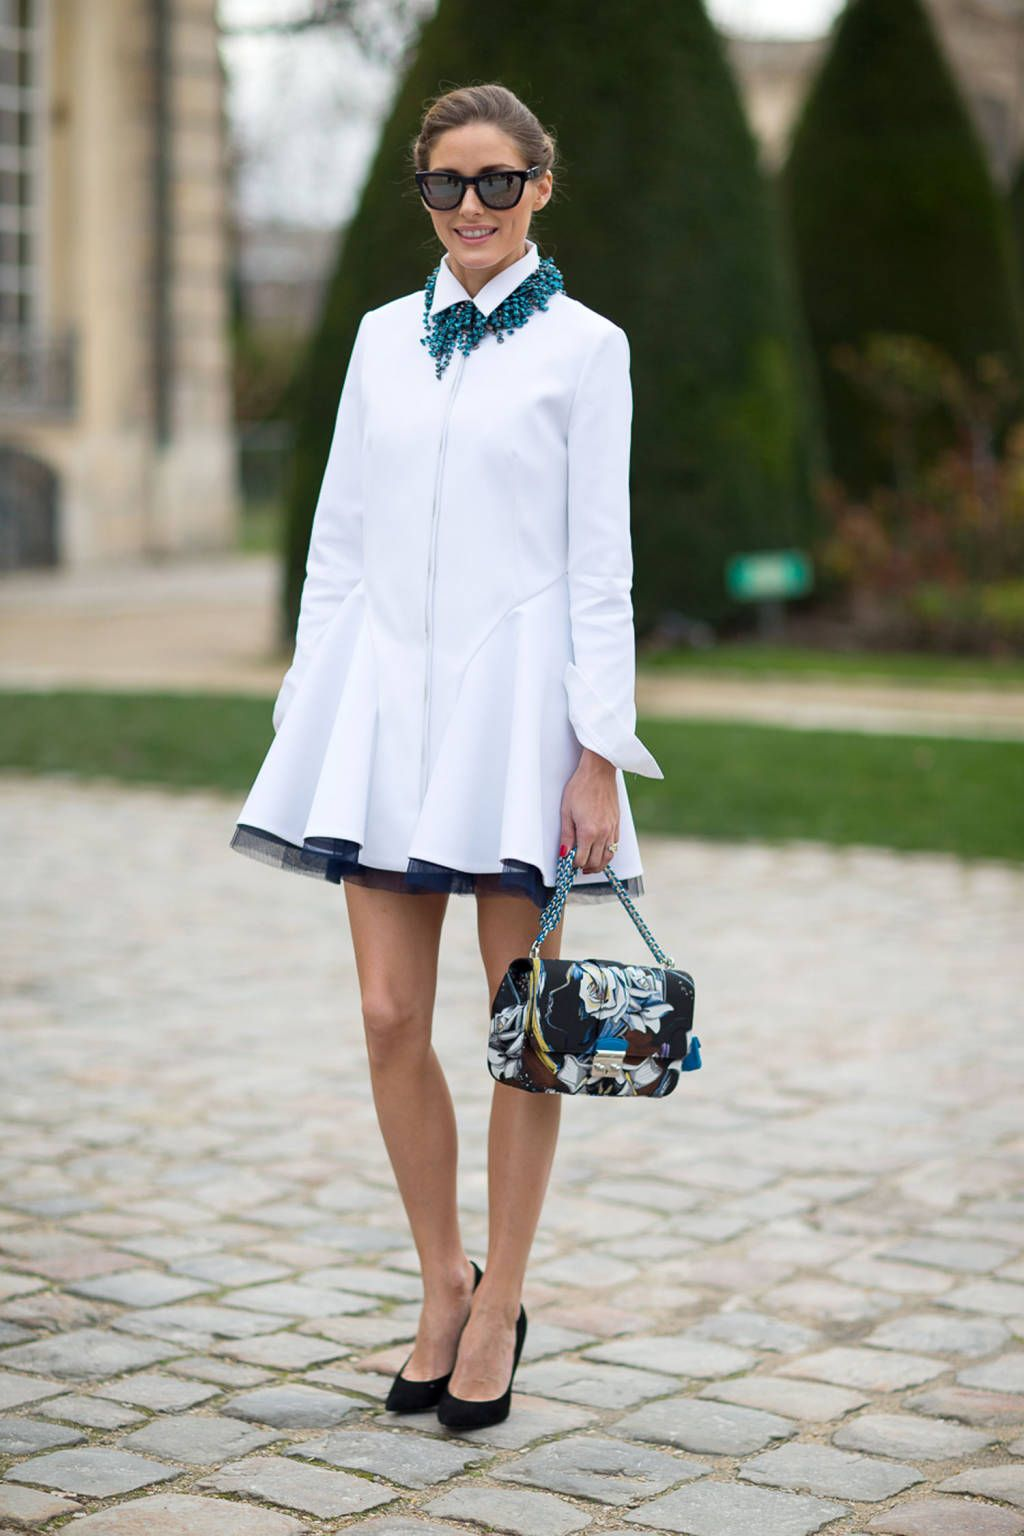 Street Style Paris Fashion Week Fall 2014 - Paris Fashion Week Fall Street Style - Harper's BAZAAR ...now go forth and share that BOW  DIAMOND style ppl! Lol ;-) xx